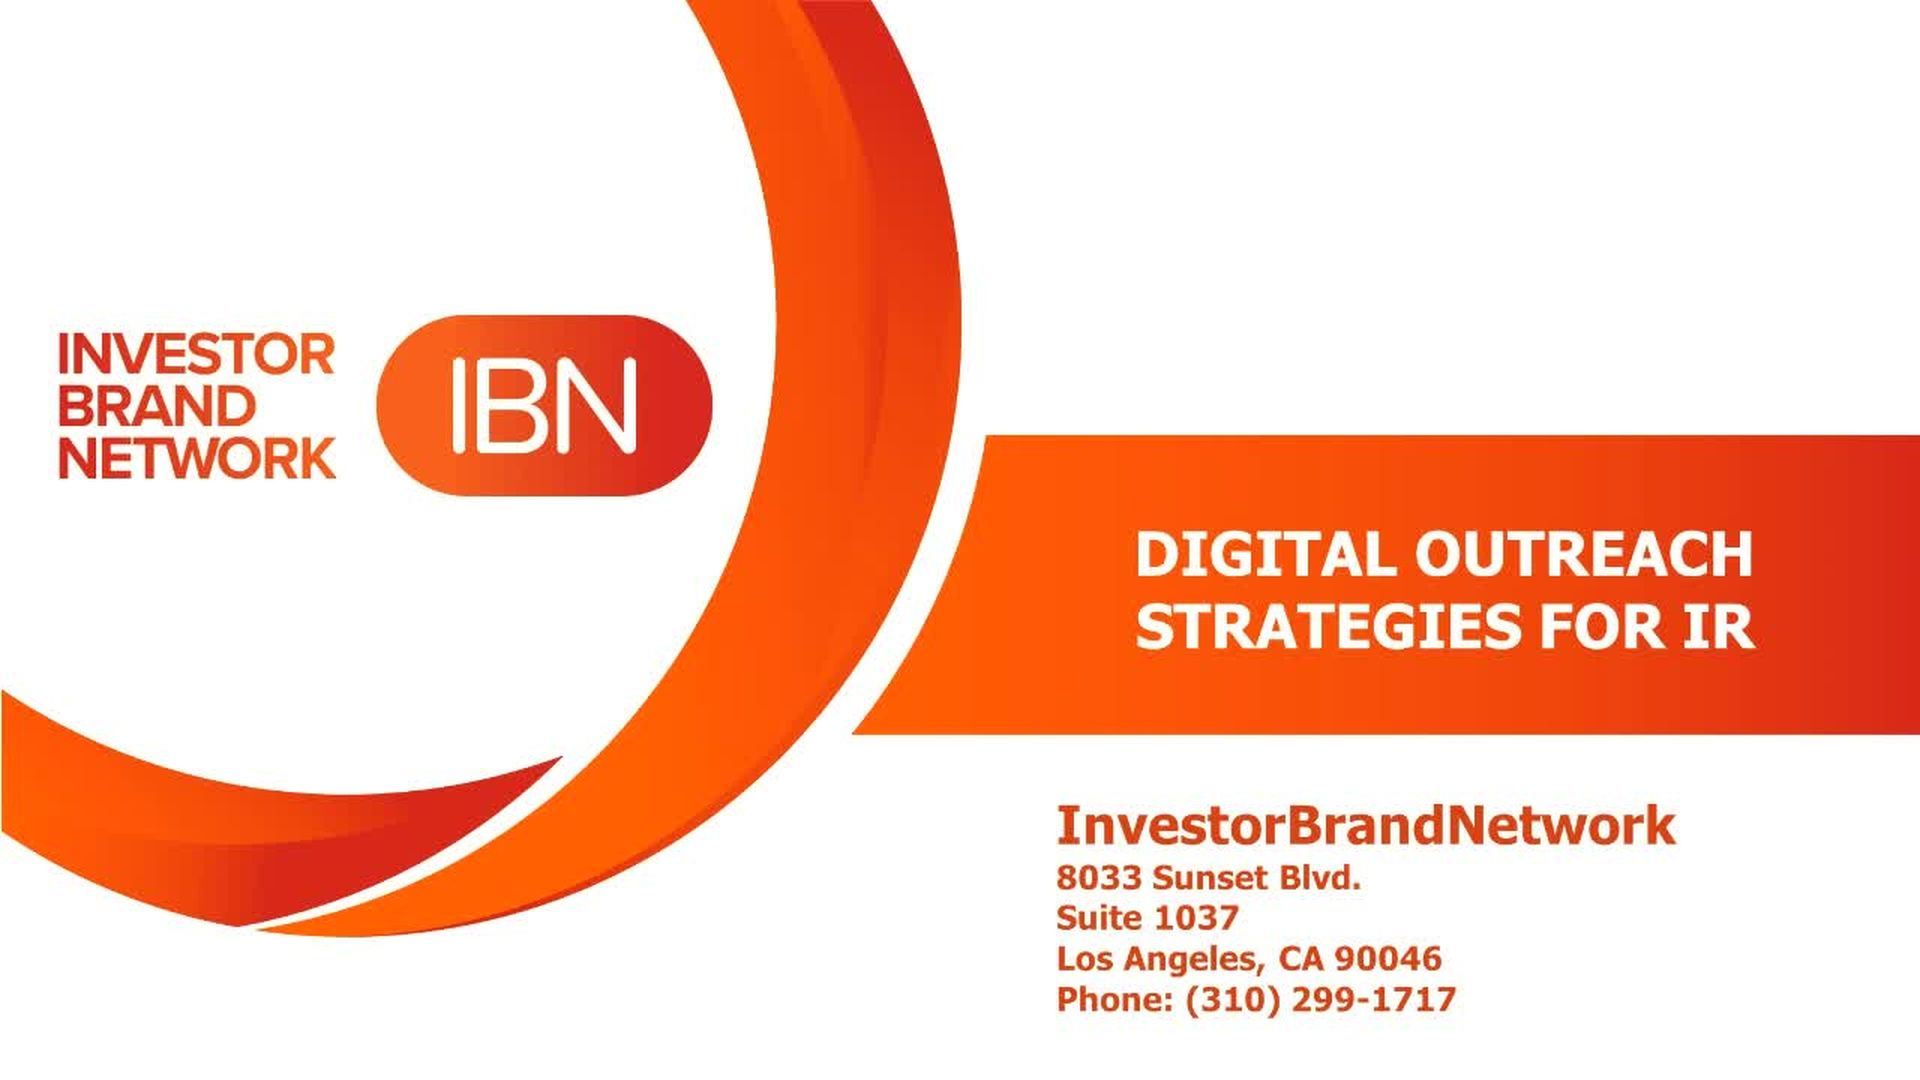 Investor Summit Presentation: Digital Outreach Strategies for IR